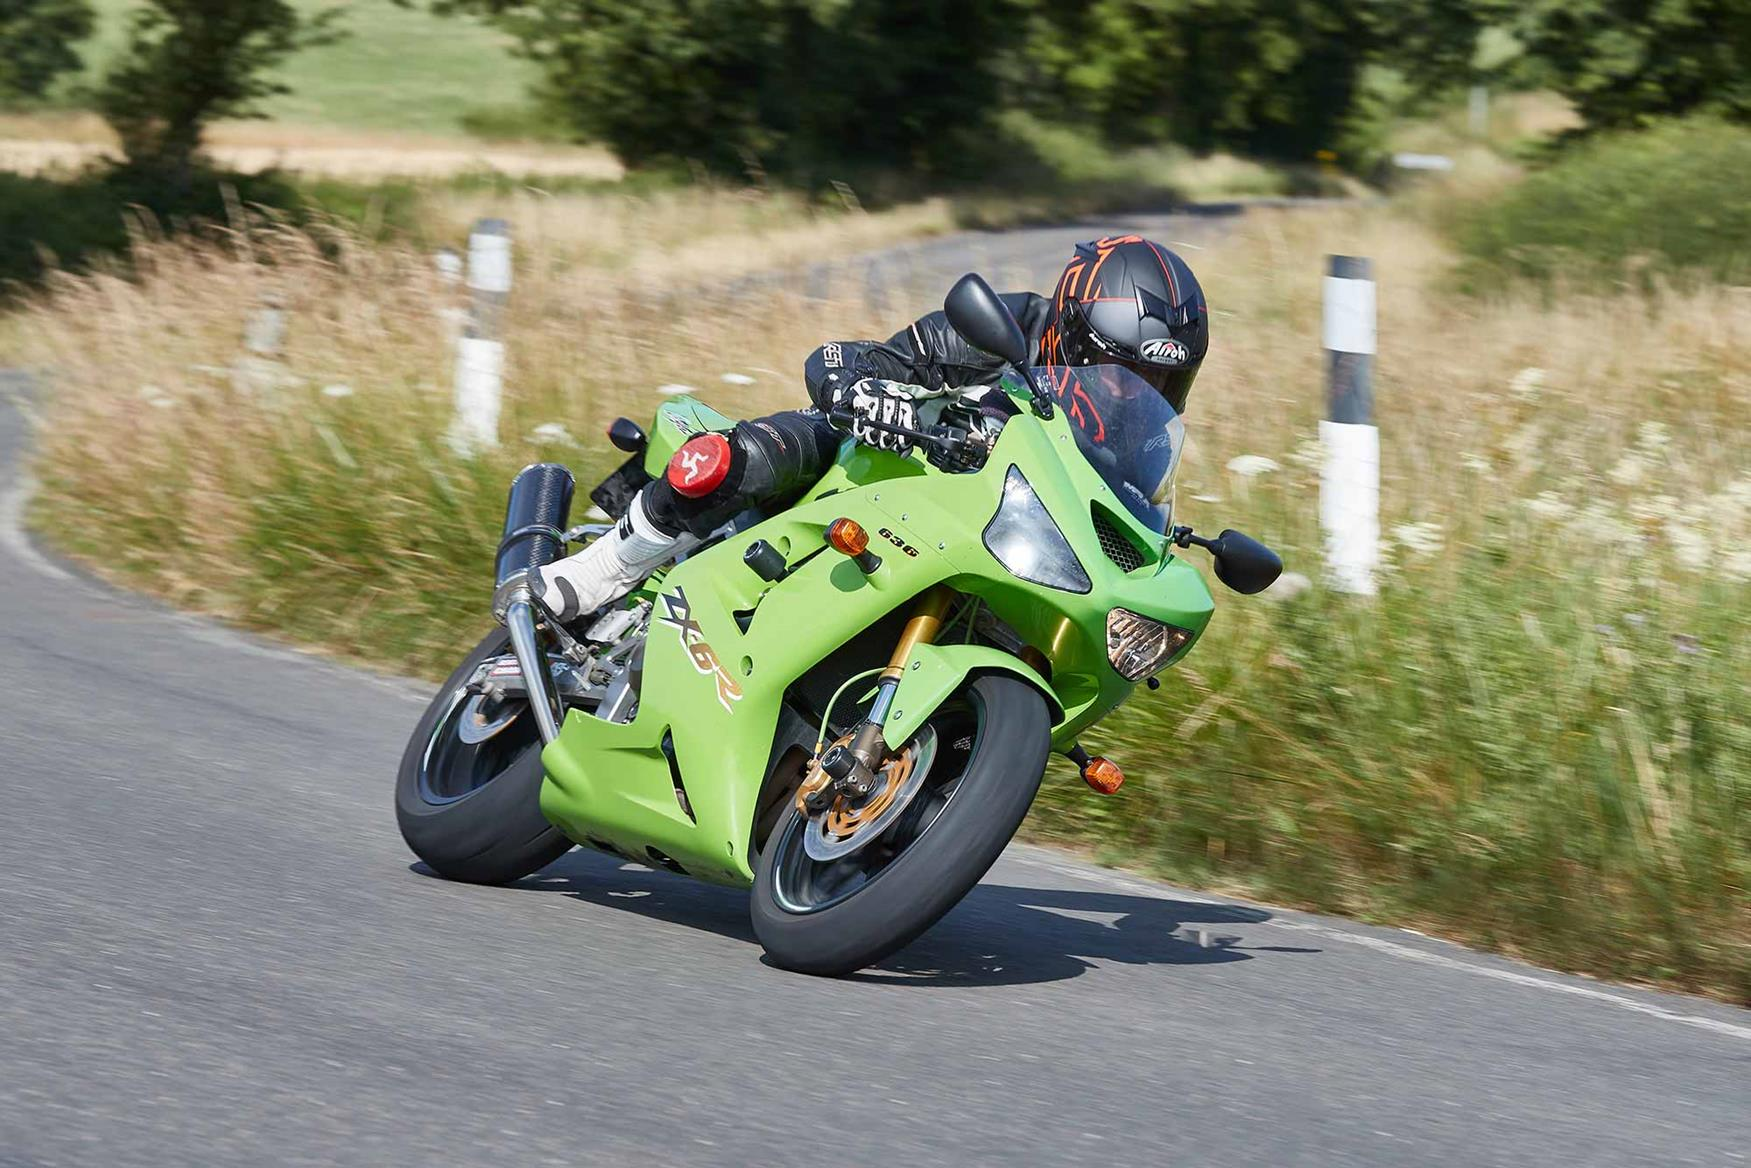 The 2003 Kawasaki ZX-6R was the most radical yet